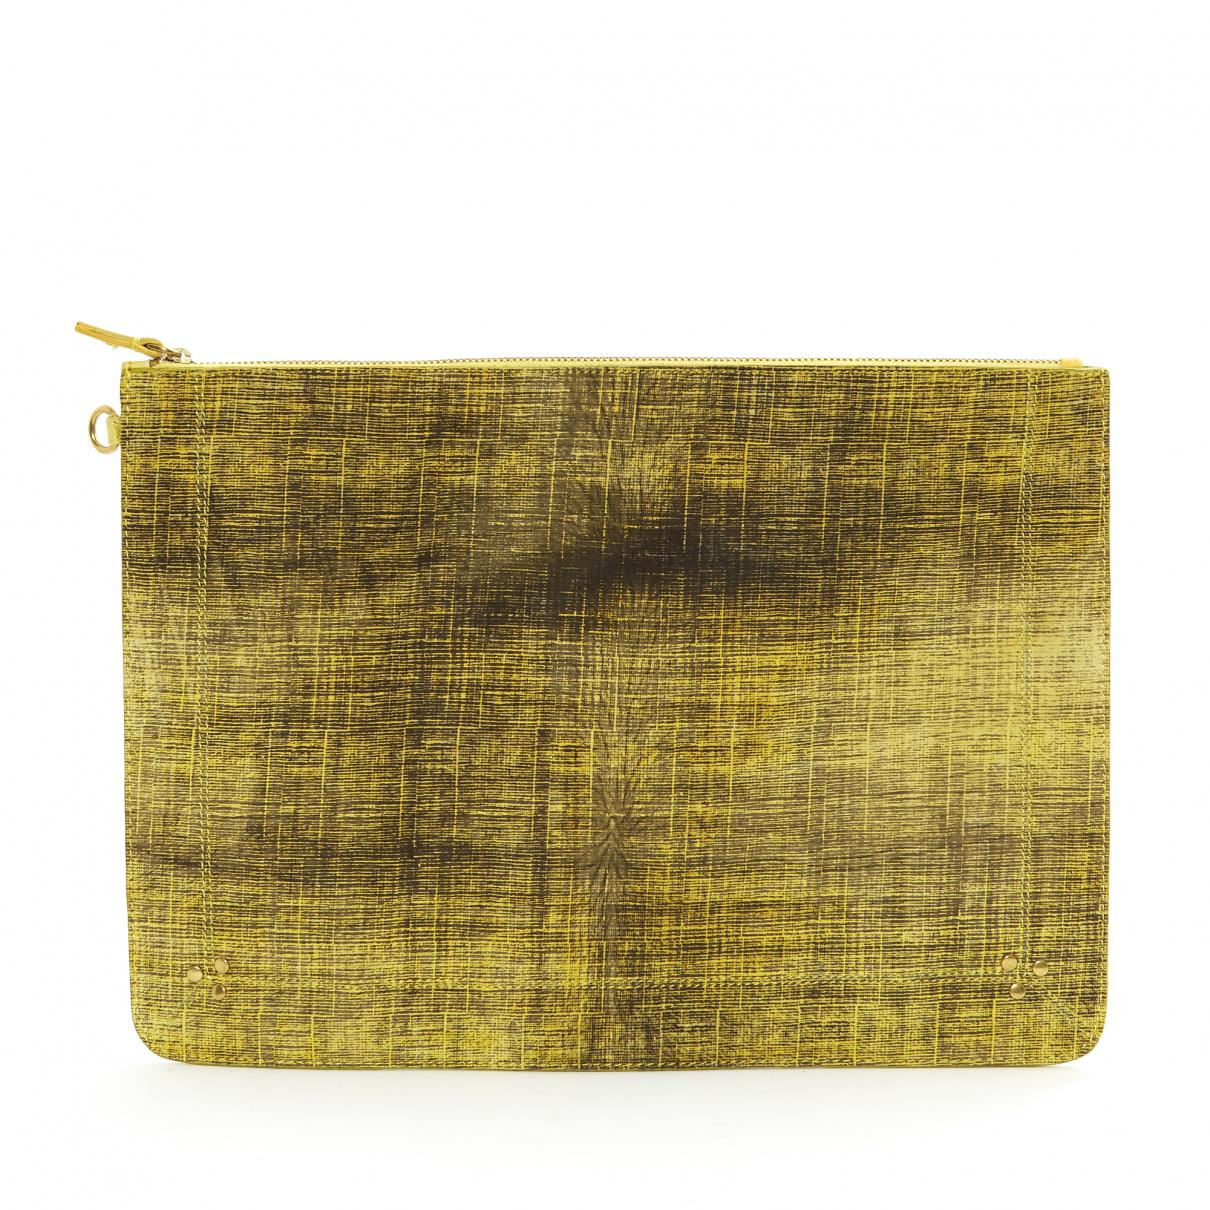 Jerome Dreyfuss Pre-owned - Leather clutch bag t1ZfPH